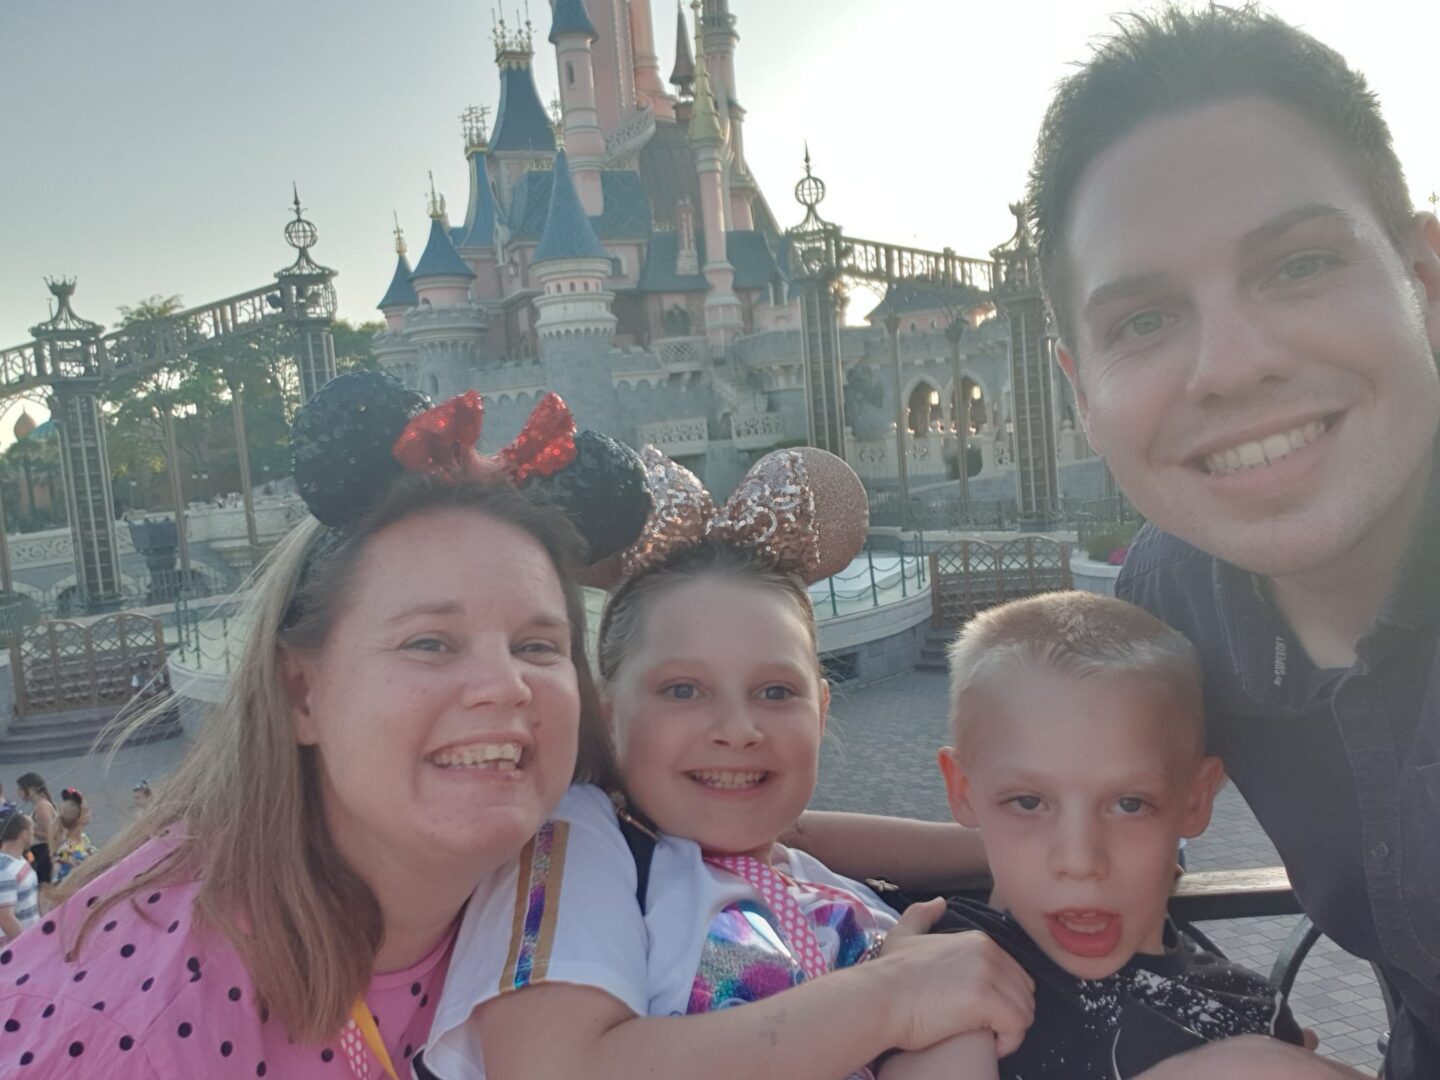 Family Selfie in front of the castle